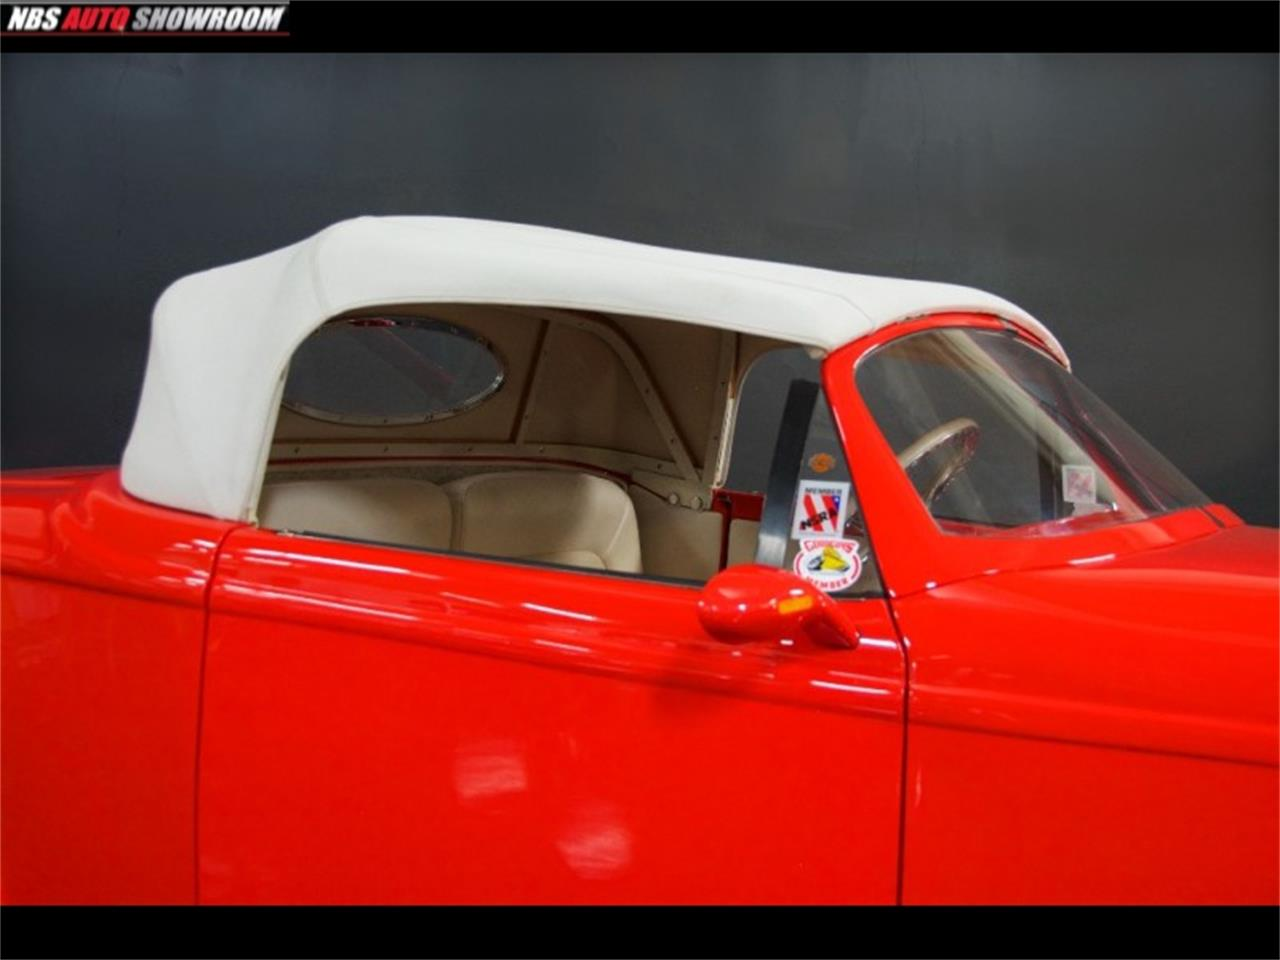 Large Picture of Classic '32 Ford Roadster located in California Offered by NBS Auto Showroom - QY4R